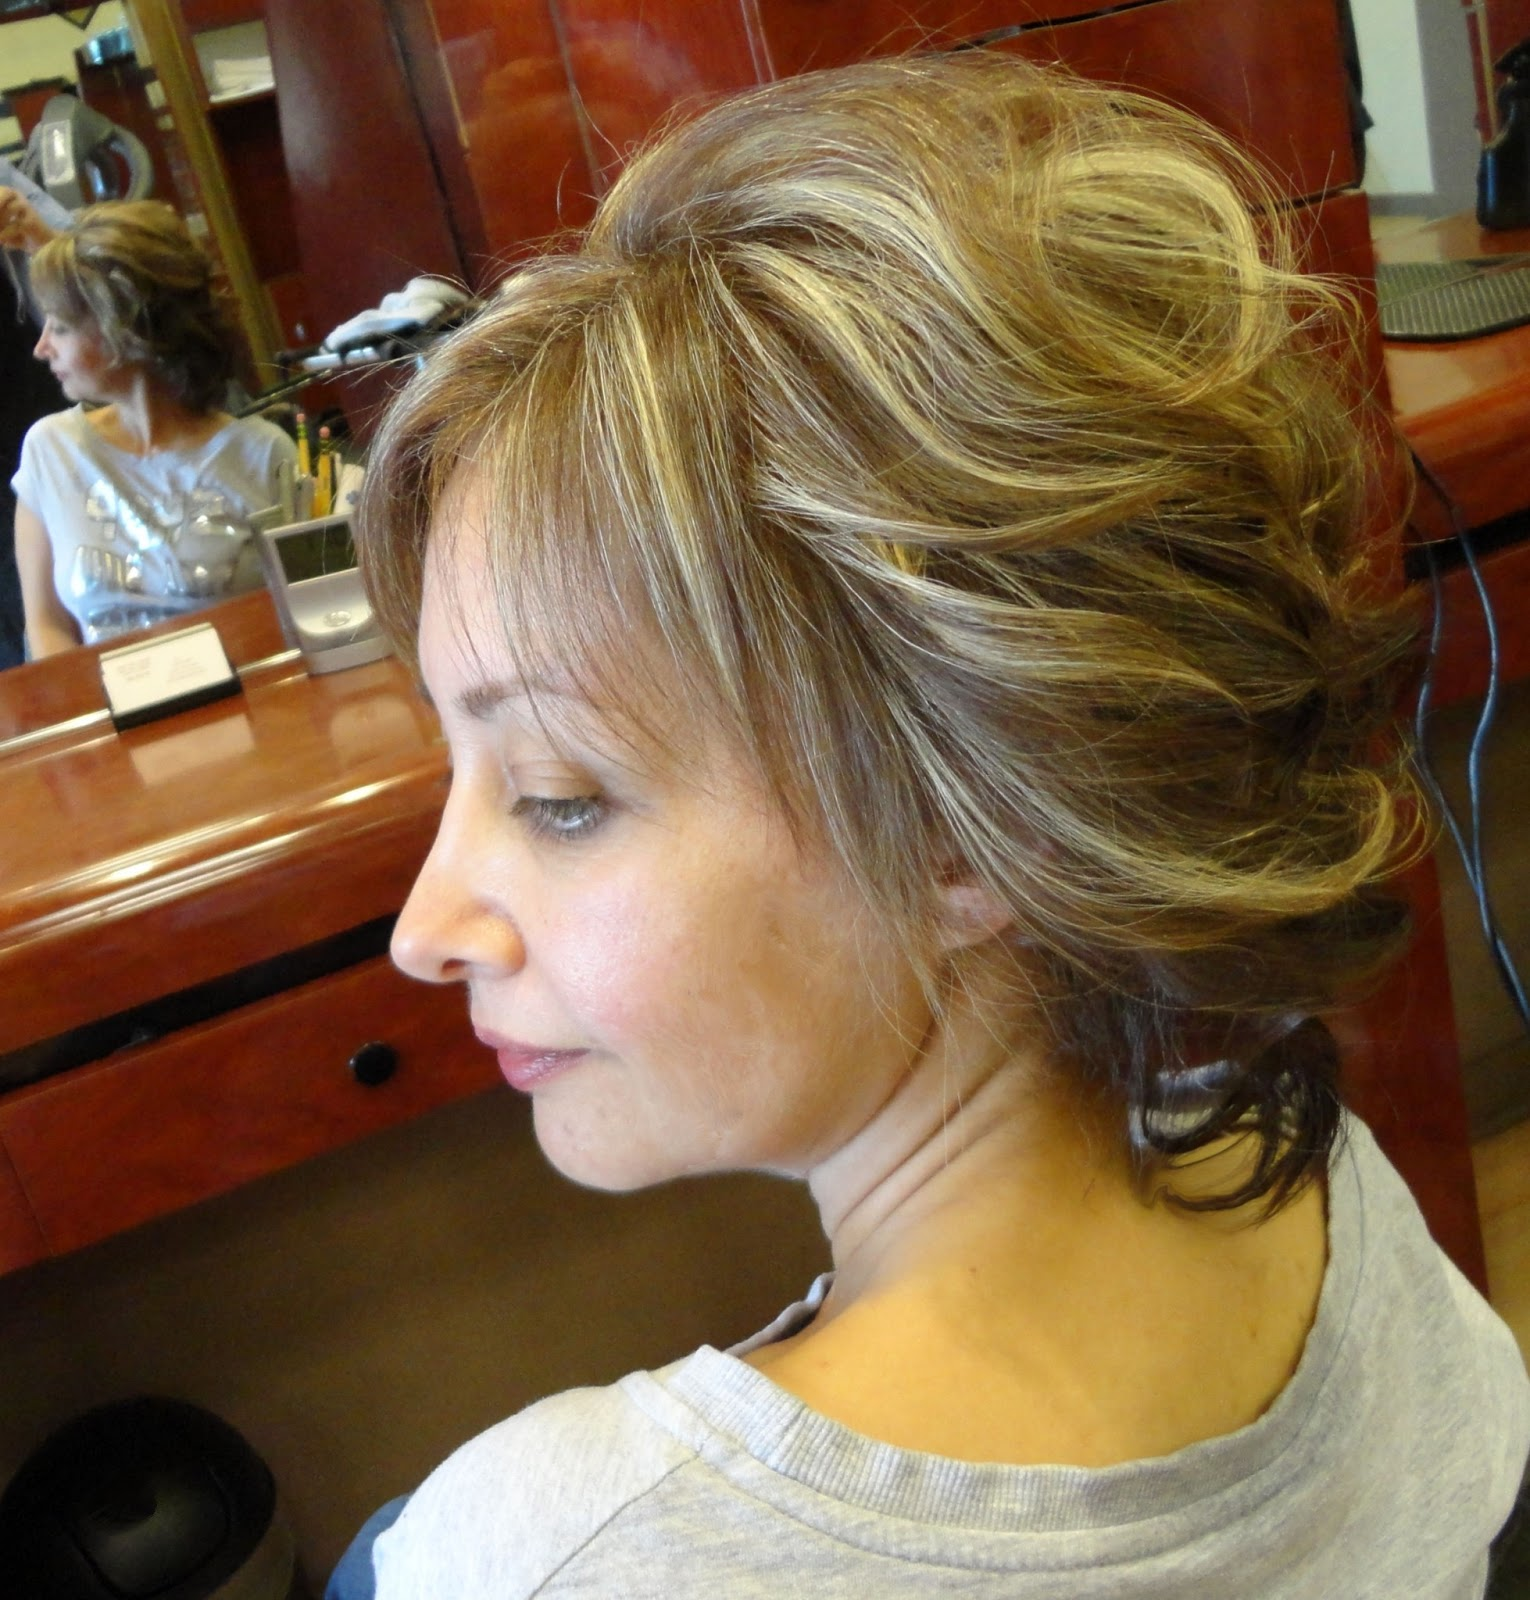 Salon Hairstyles - Viewing Gallery